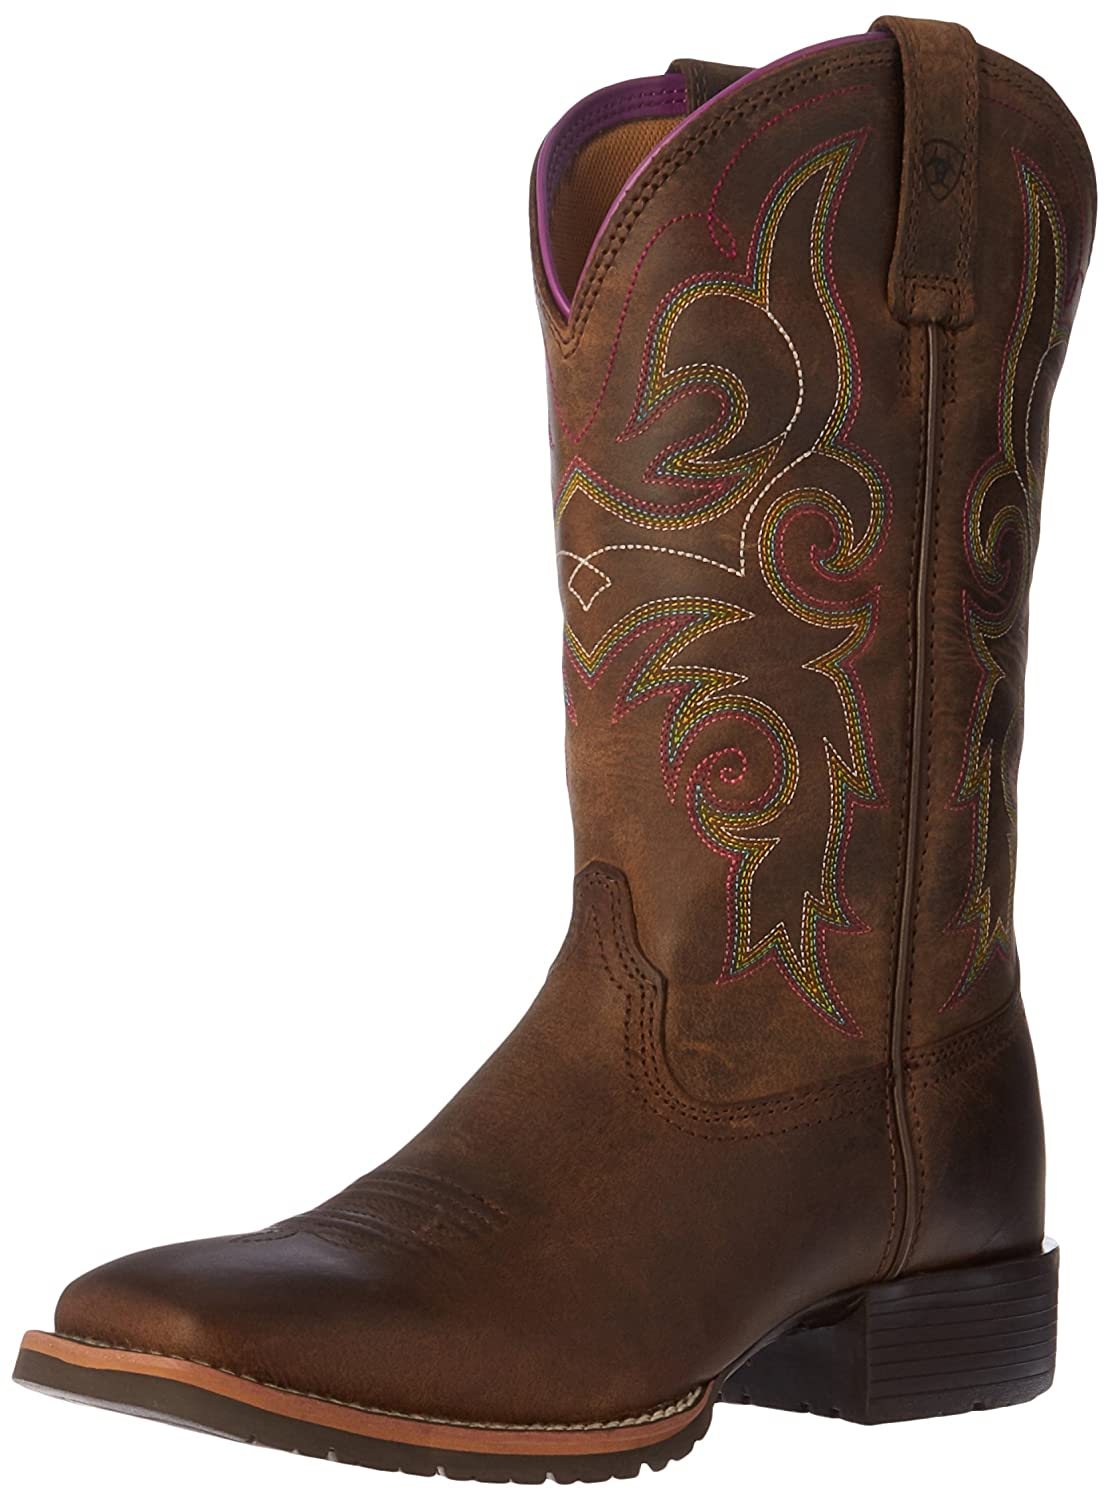 Ariat Women's Hybrid Rancher Work Boot B01BQT6J2Q 10 B(M) US|Distressed Brown/Hot Leaf